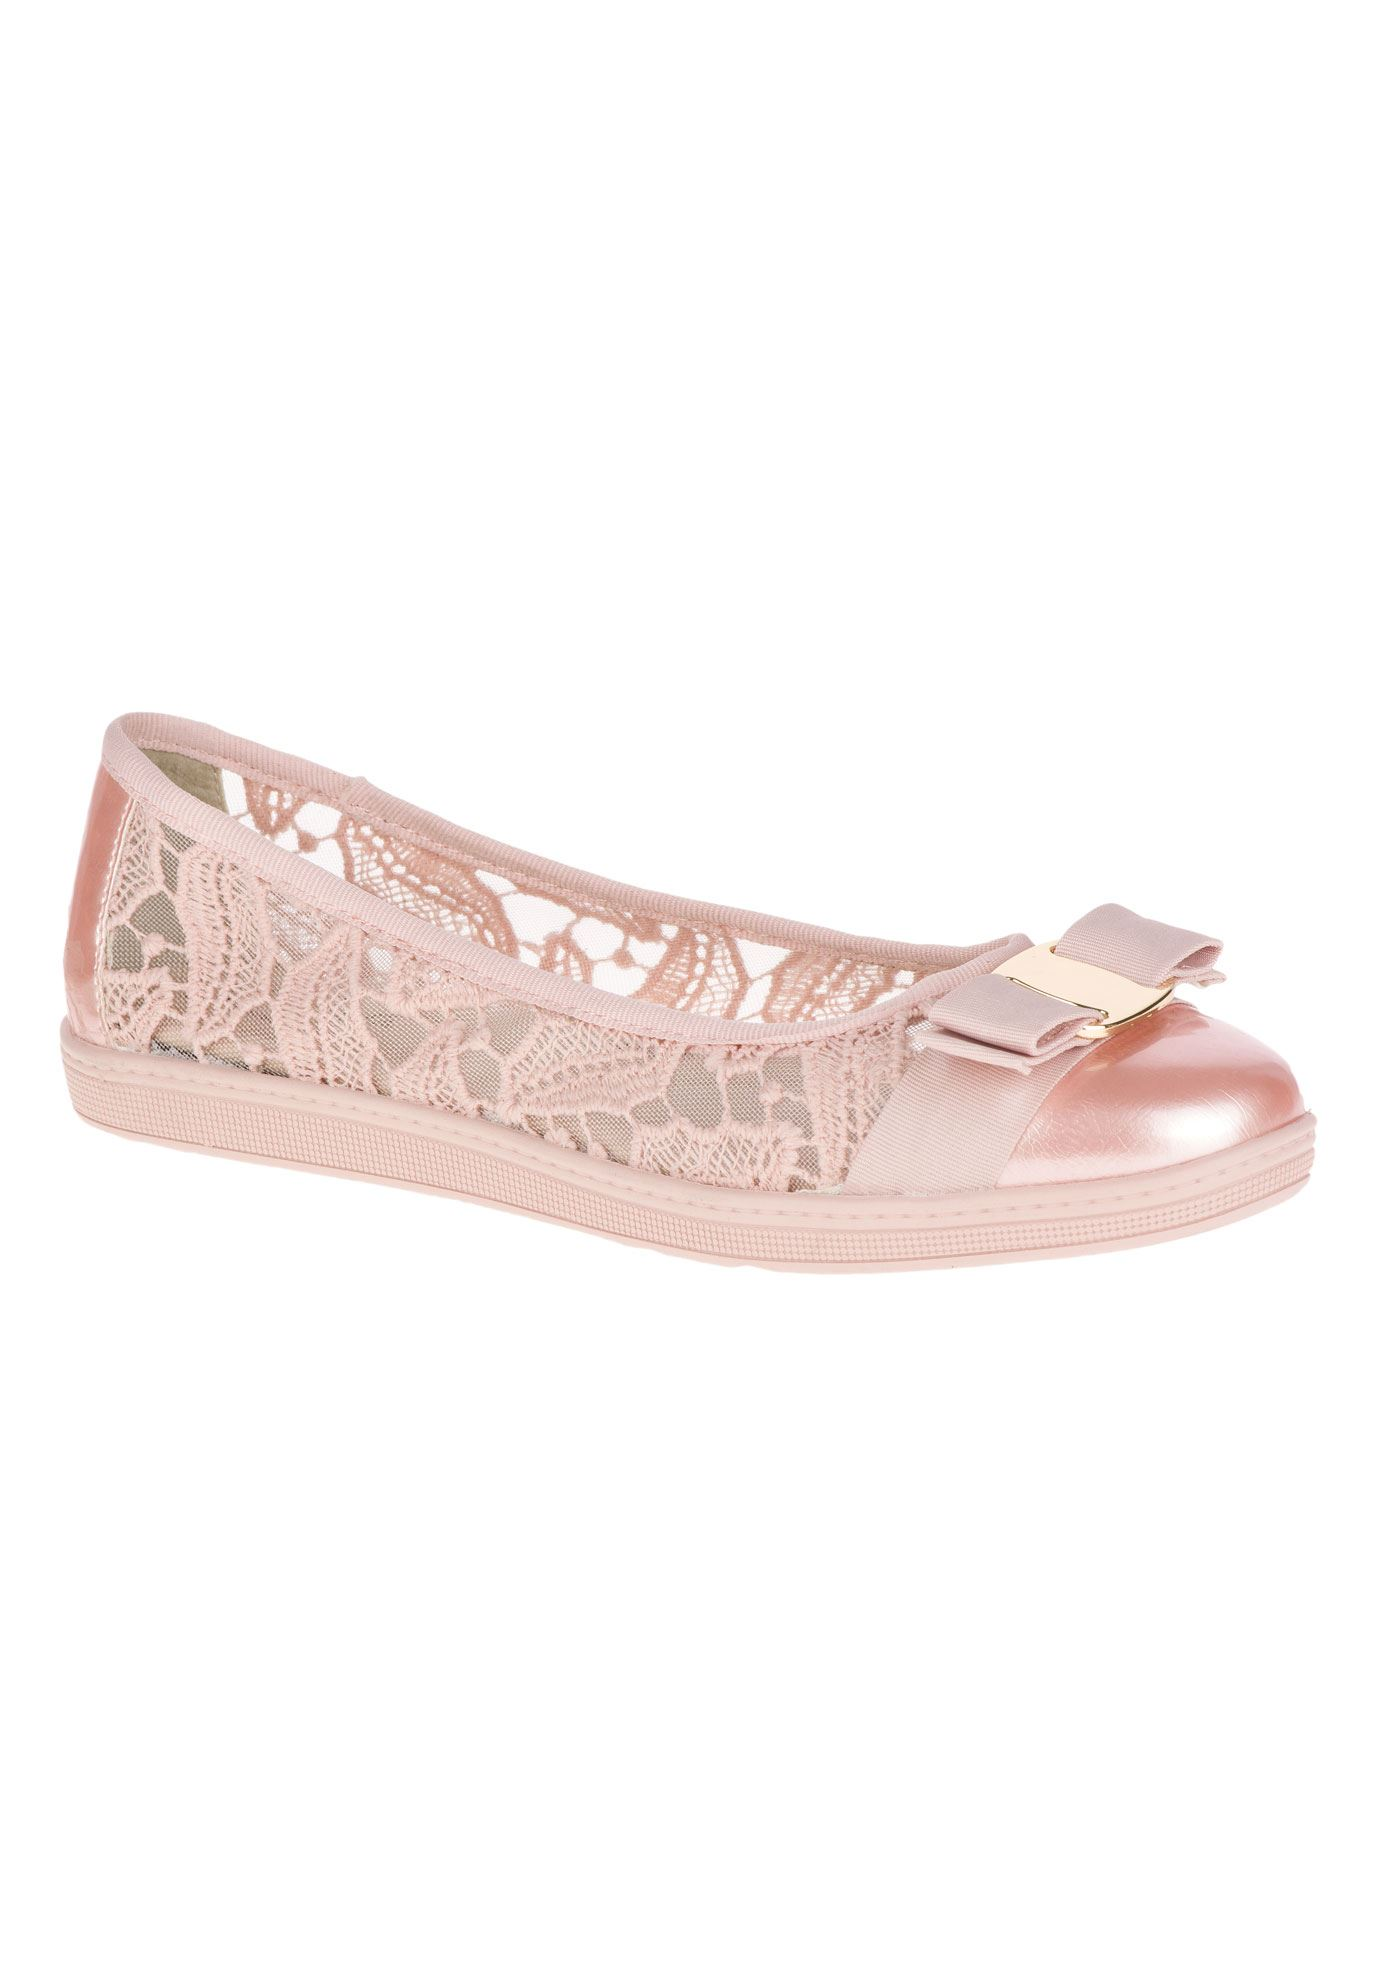 Fagan Flats by Soft Style®,